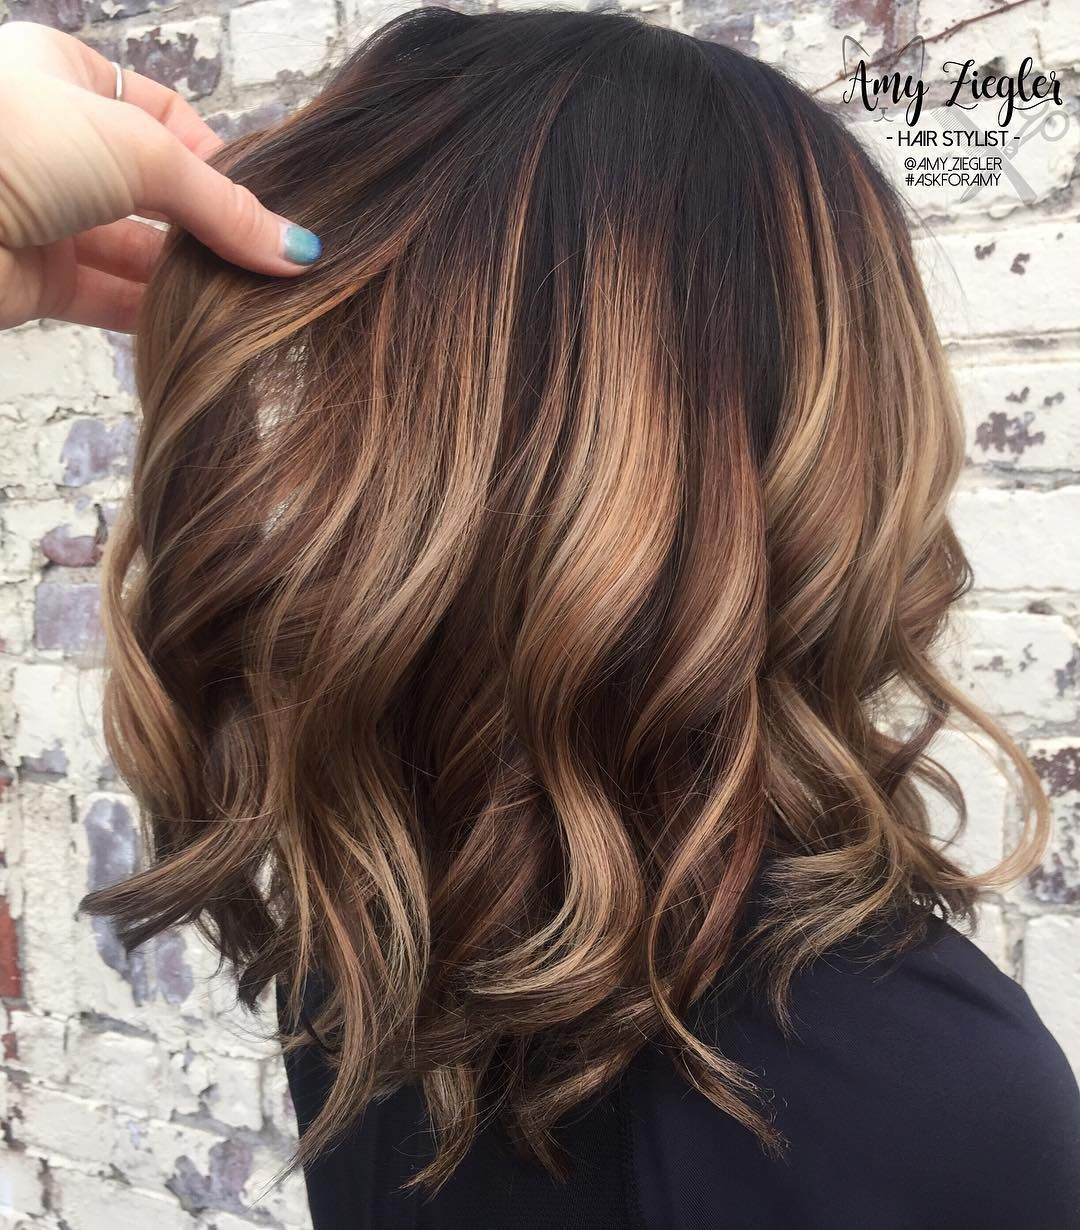 Photo of 10 Trendy Brown Balayage Hairstyles for Medium-Length Hair 2020